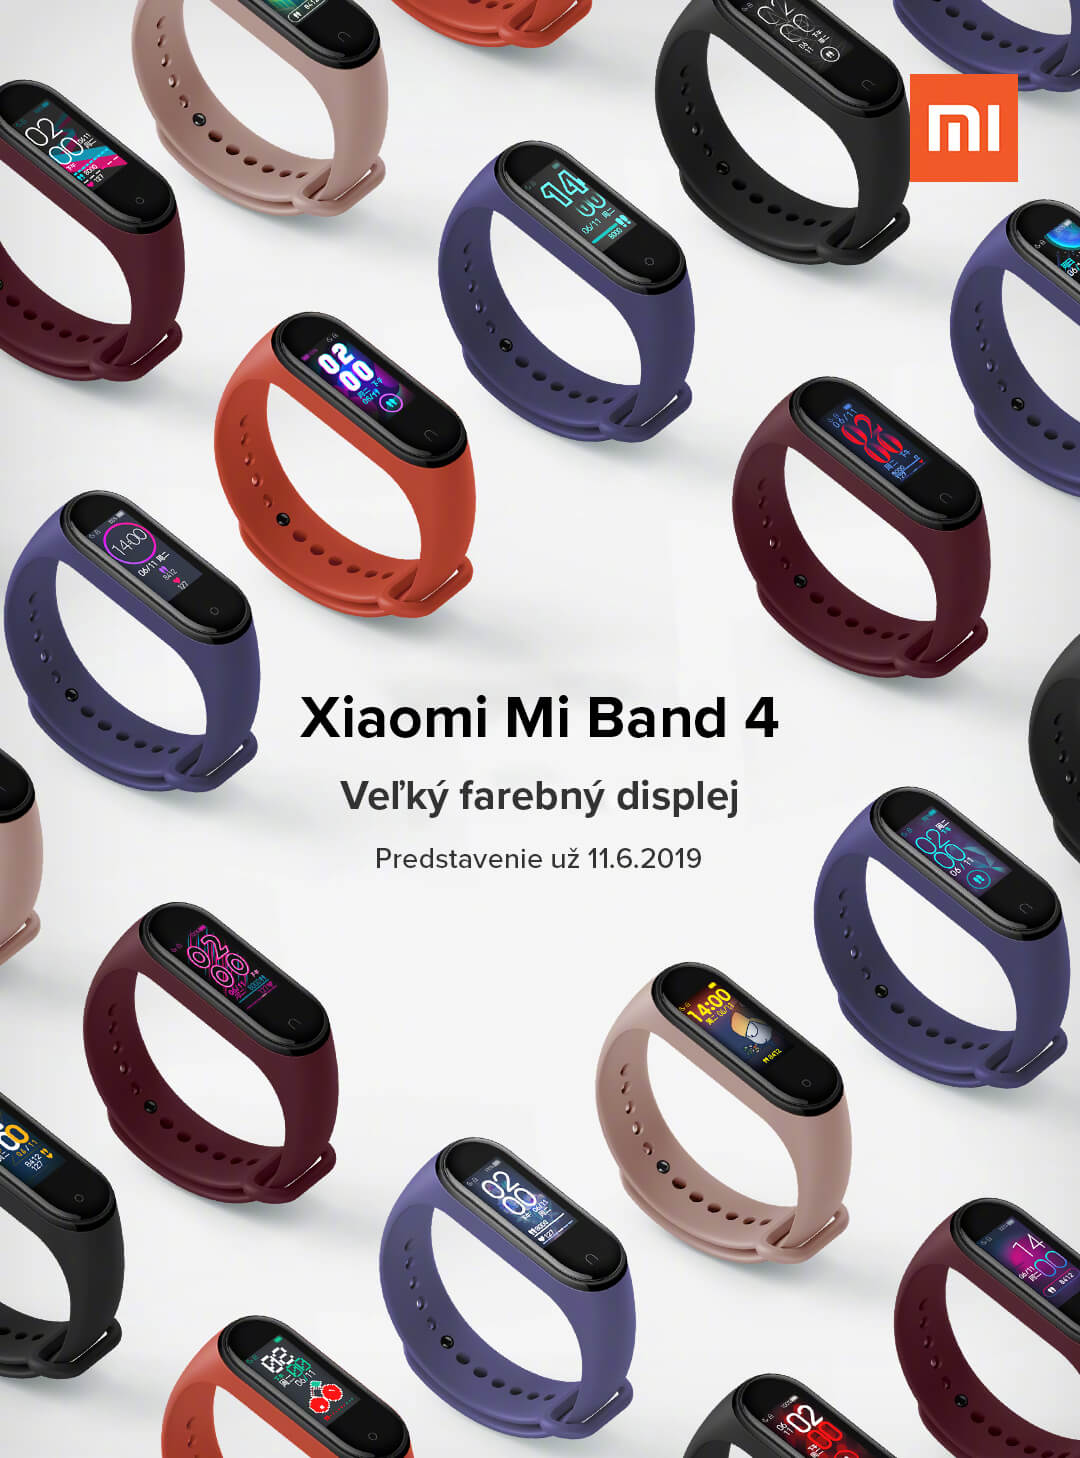 Mi Band 4 display